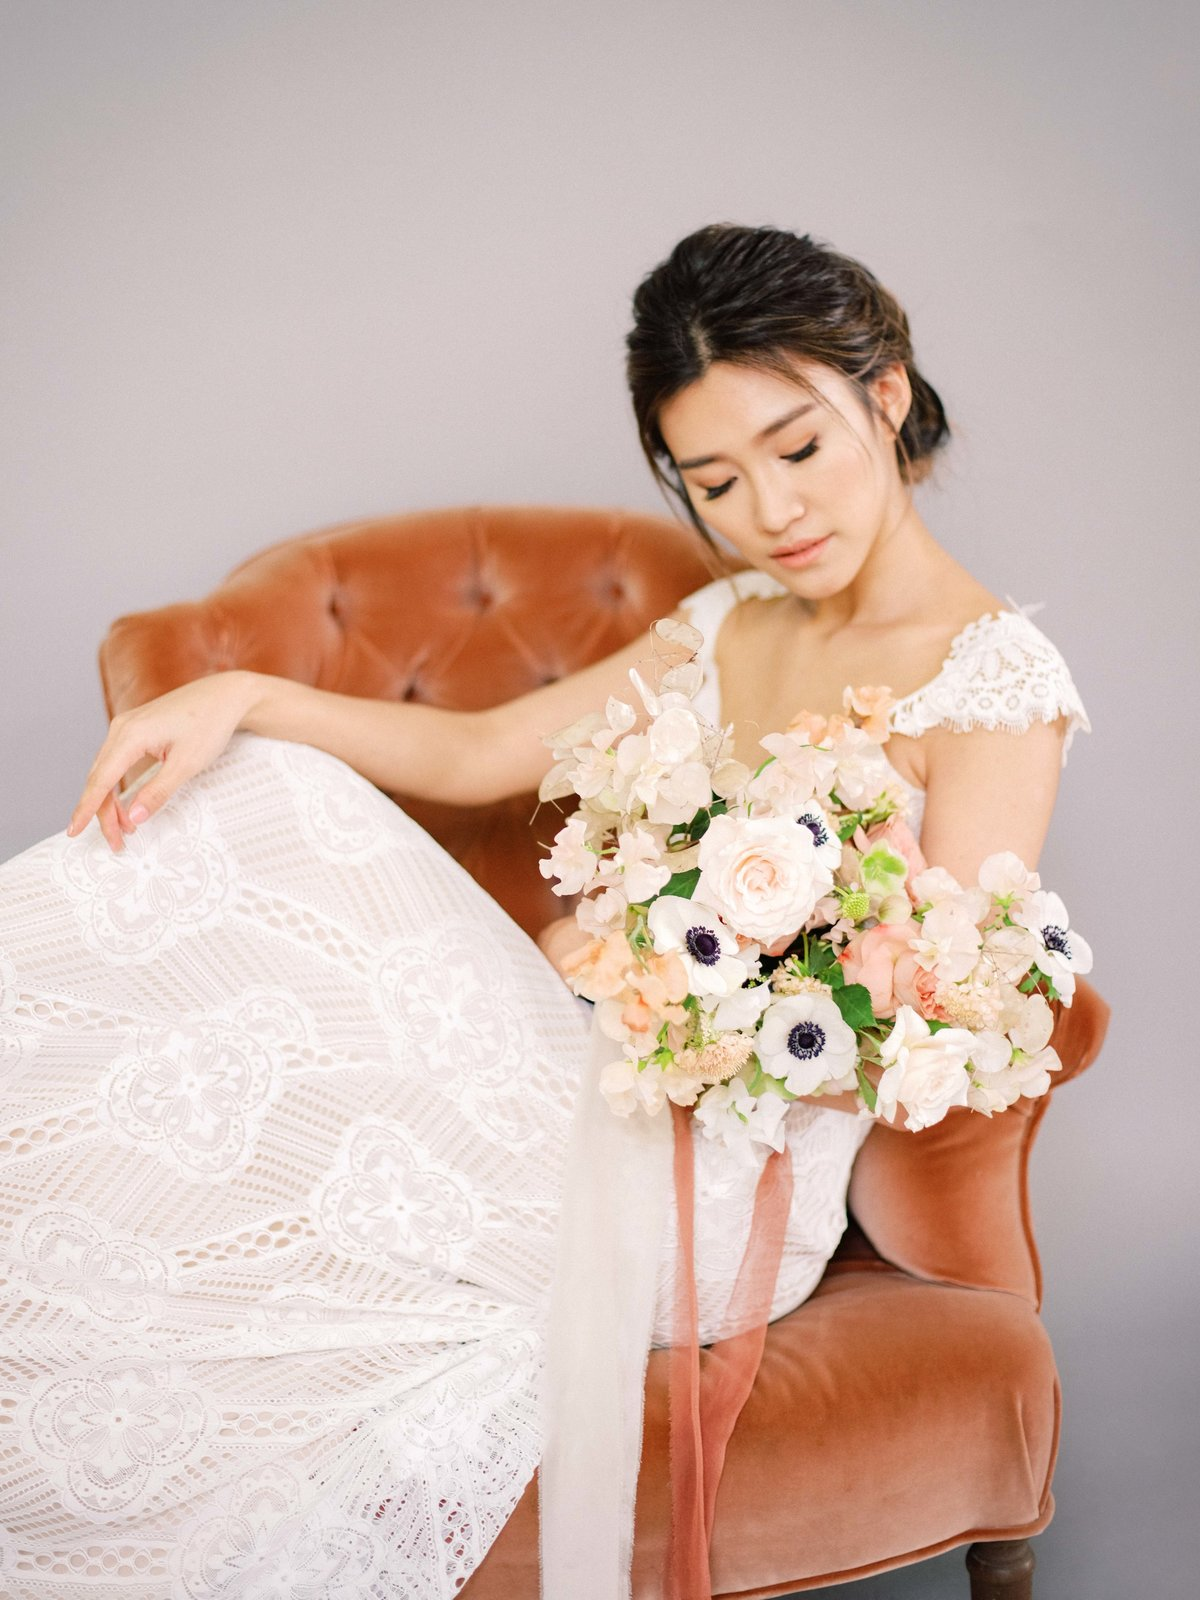 Babsie-Ly-Photography-Style-Me-Pretty-San-Diego-California-Film-Wedding-Photographer-Claire-Pettibone-Dress-Asian-Bride-023